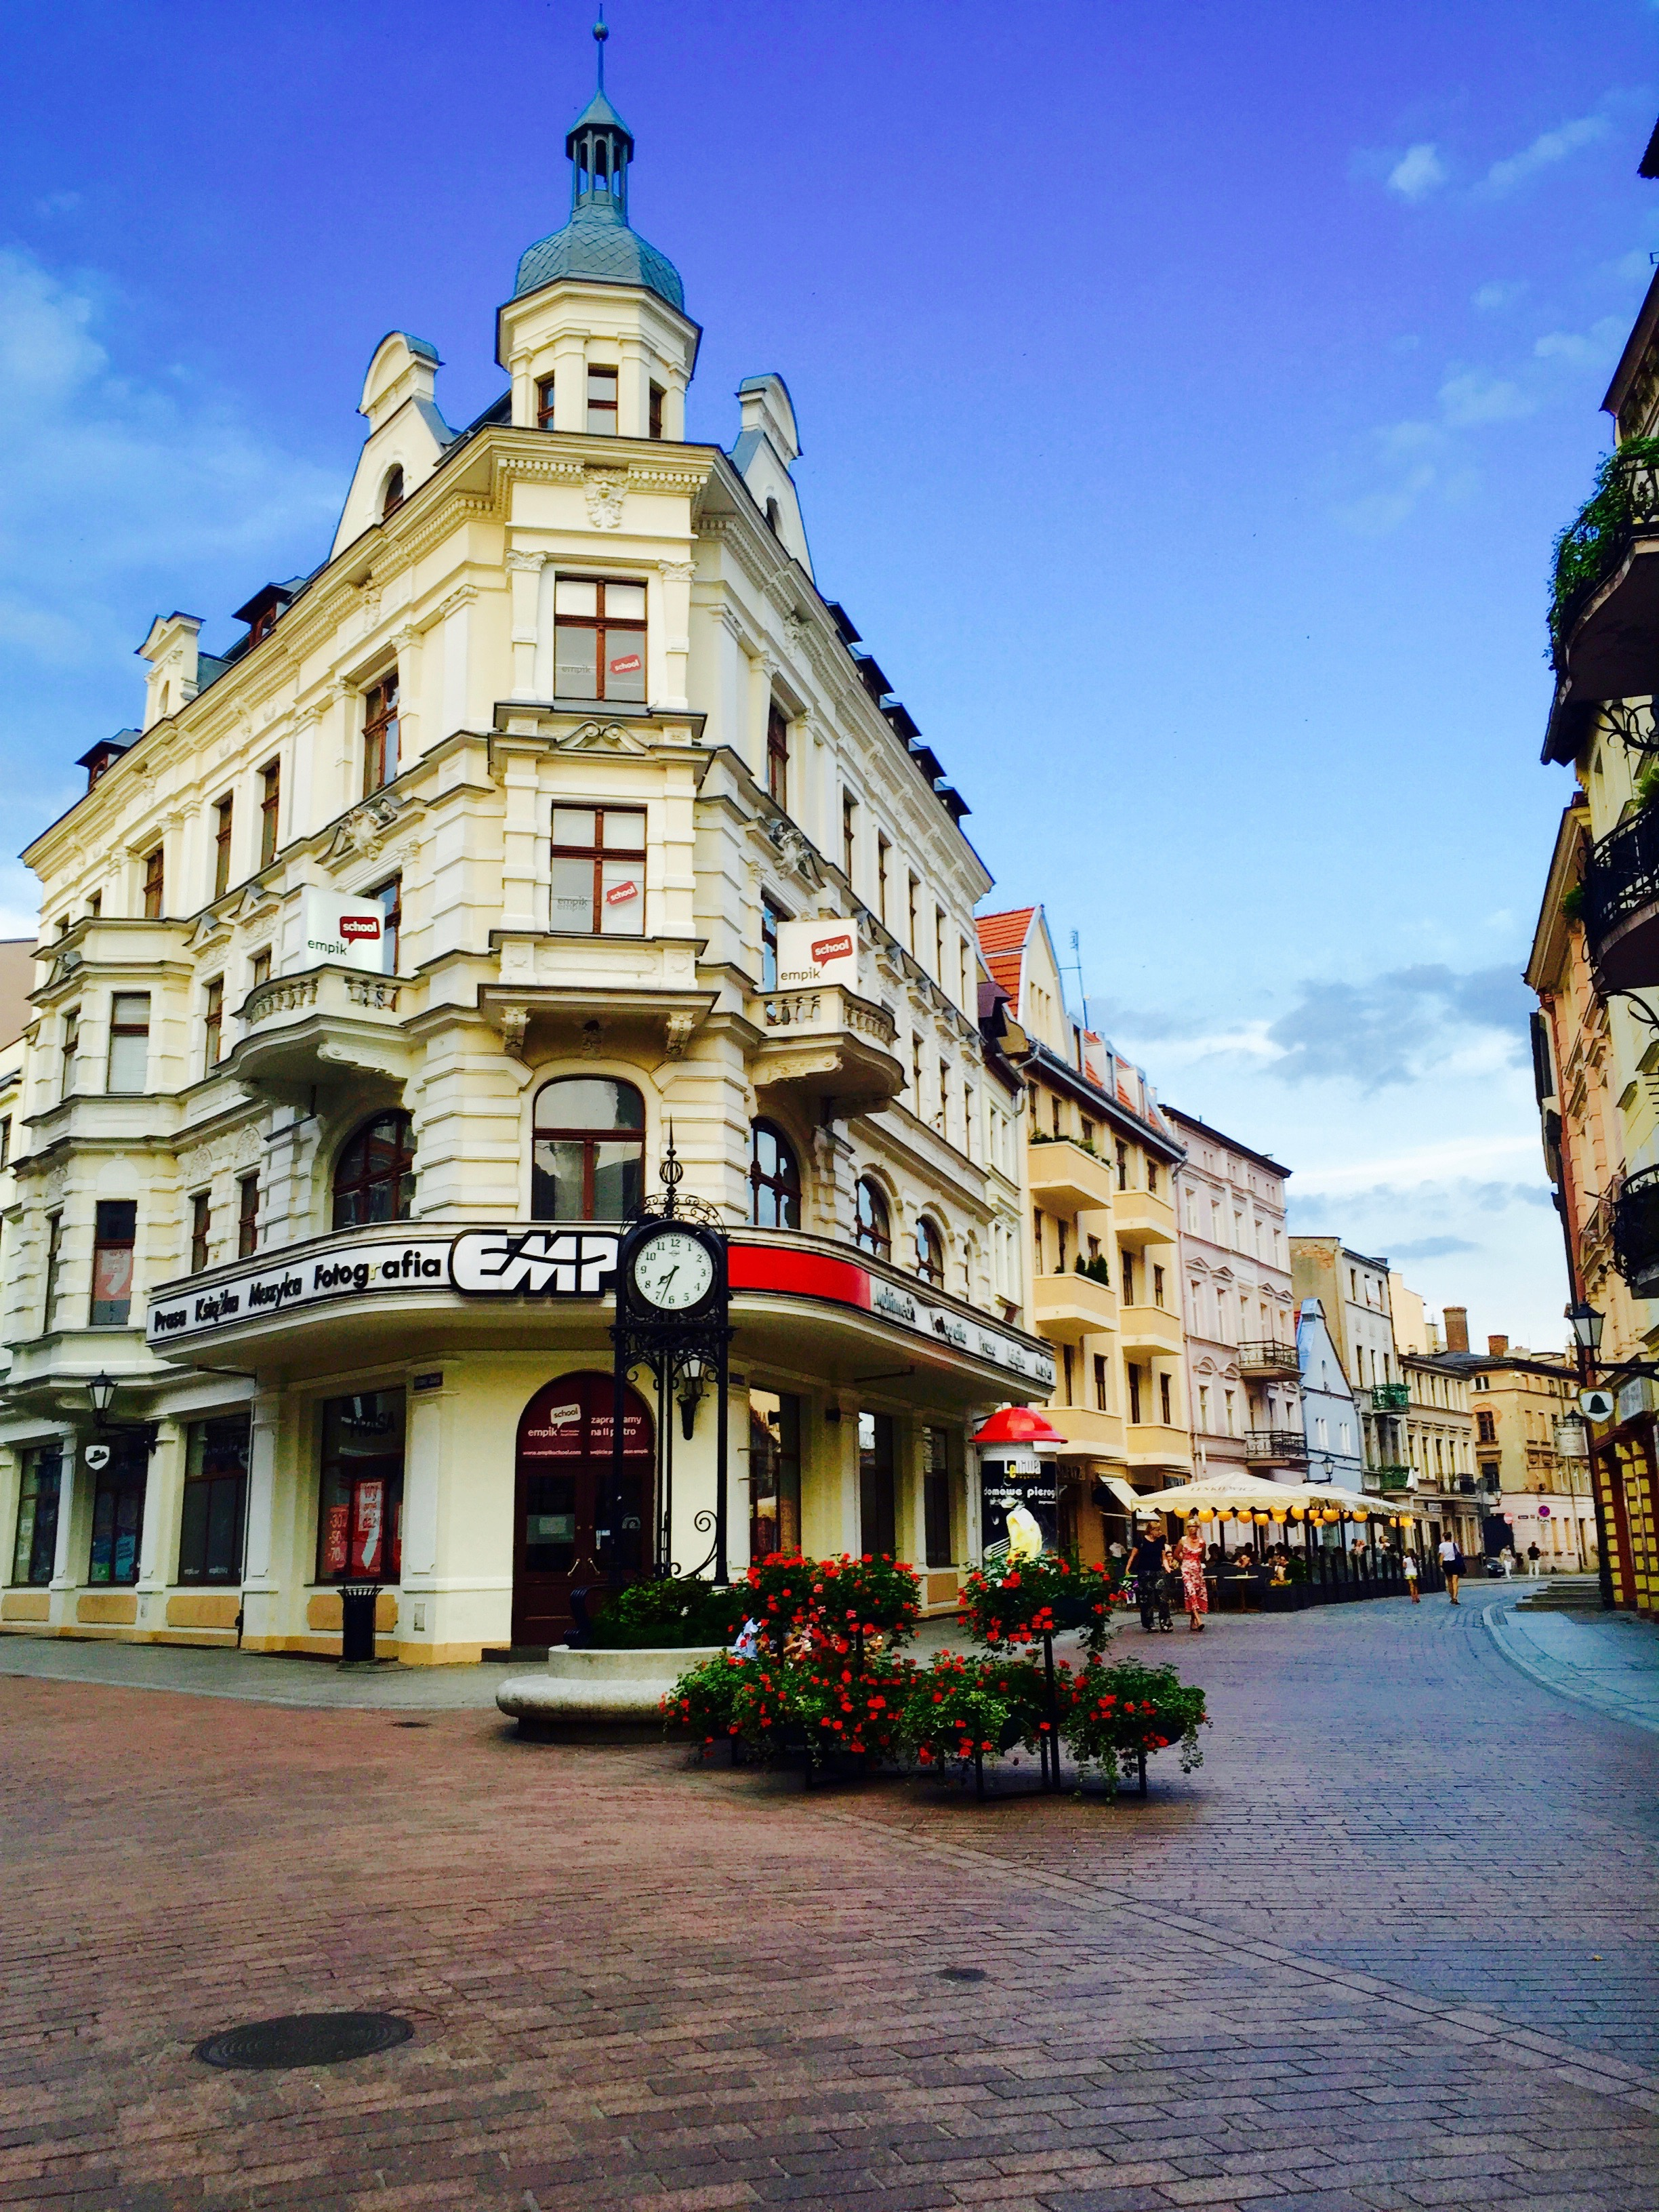 6 Cities to Visit in Poland- Medieval Town of Toruń